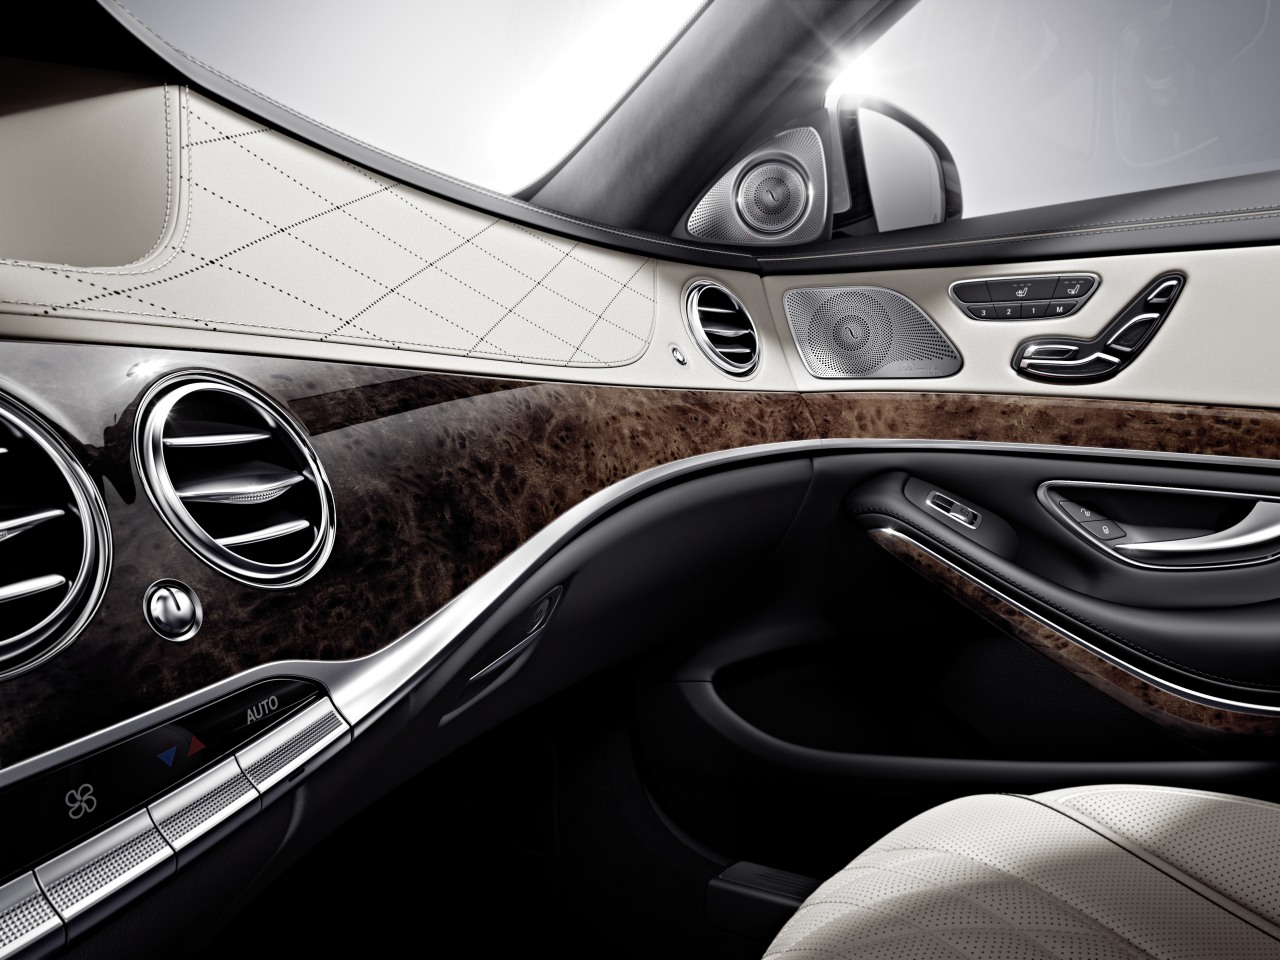 2014 Mercedes Benz S Class Interior Teaser 1 Roadtest Tv